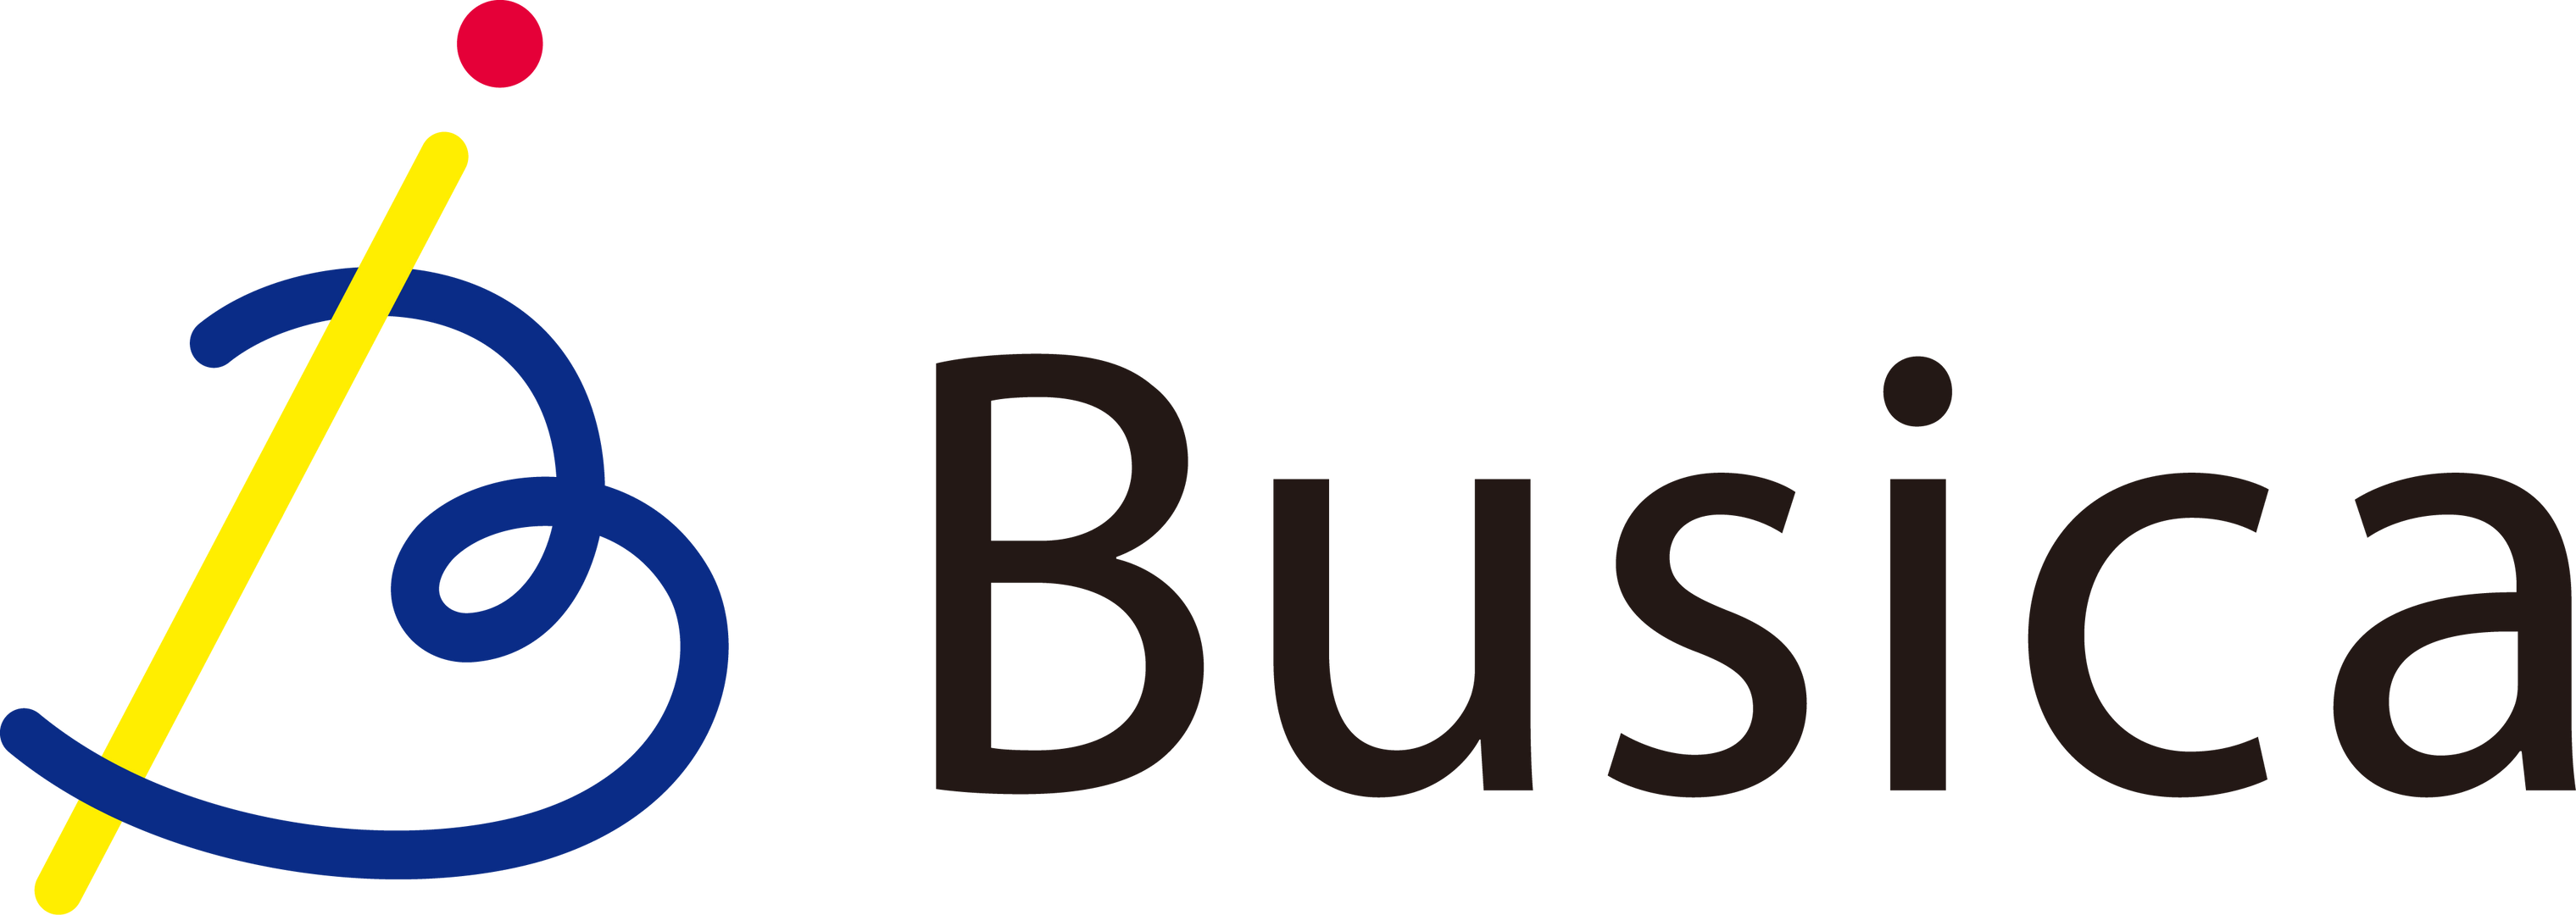 busica_logo_w1000px.png